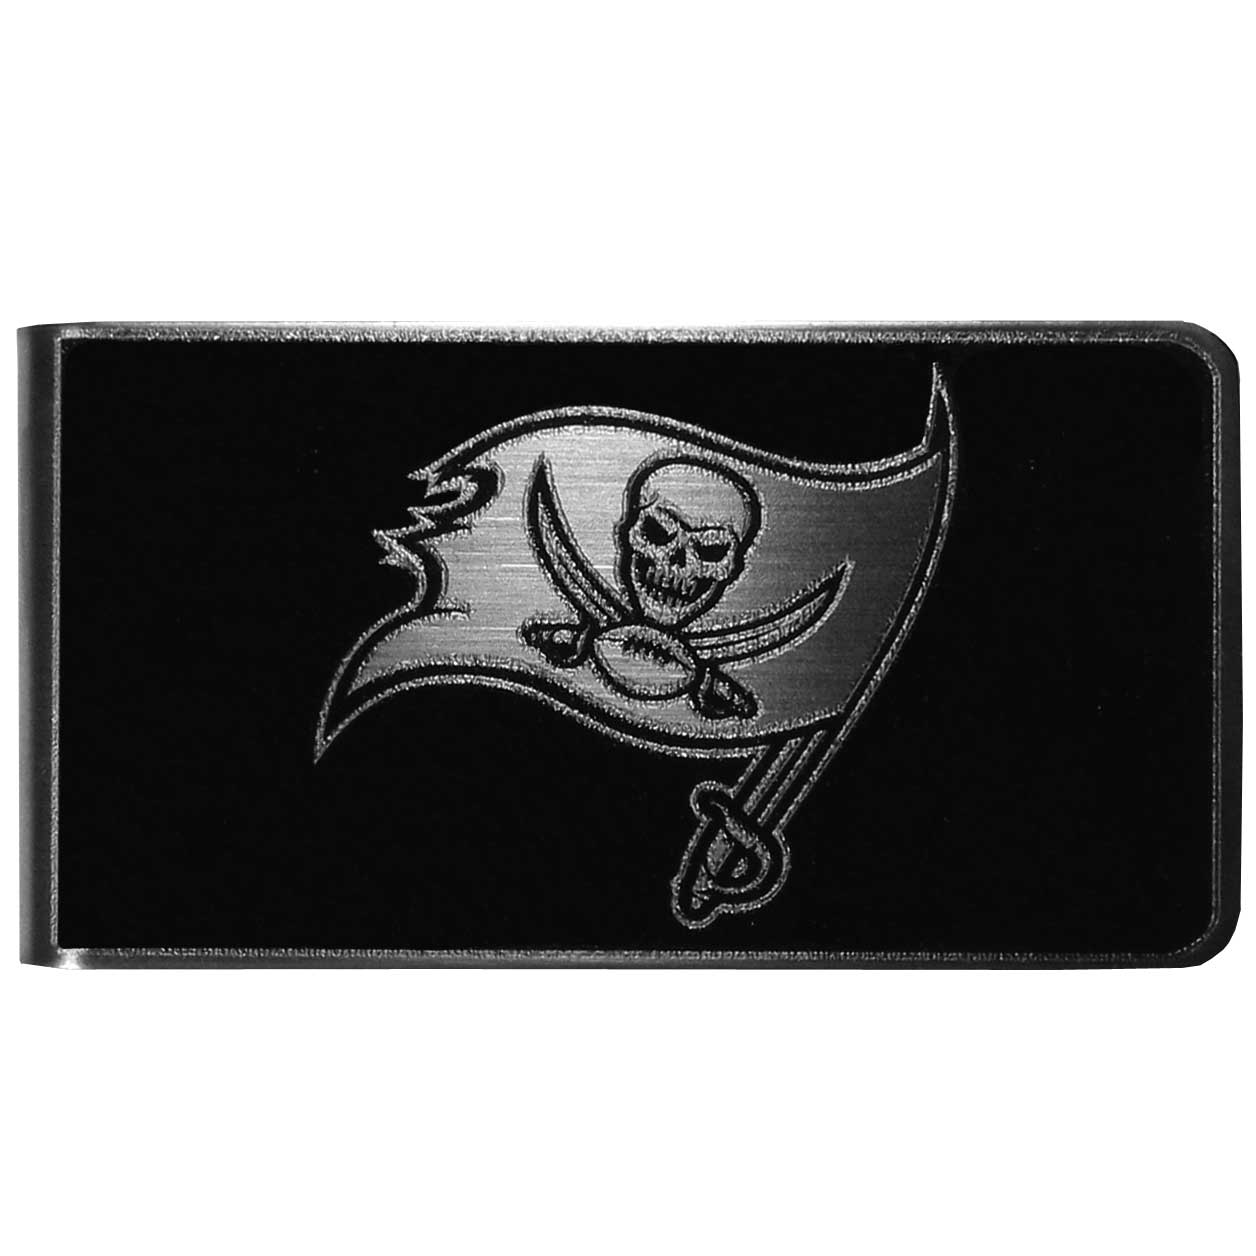 Tampa Bay Buccaneers Black and Steel Money Clip - Our monochromatic steel money clips have a classic style and superior quality. The strong, steel clip has a black overlay of the Tampa Bay Buccaneers logo over the brushed metal finish creating a stylish men's fashion accessory that would make any fan proud.